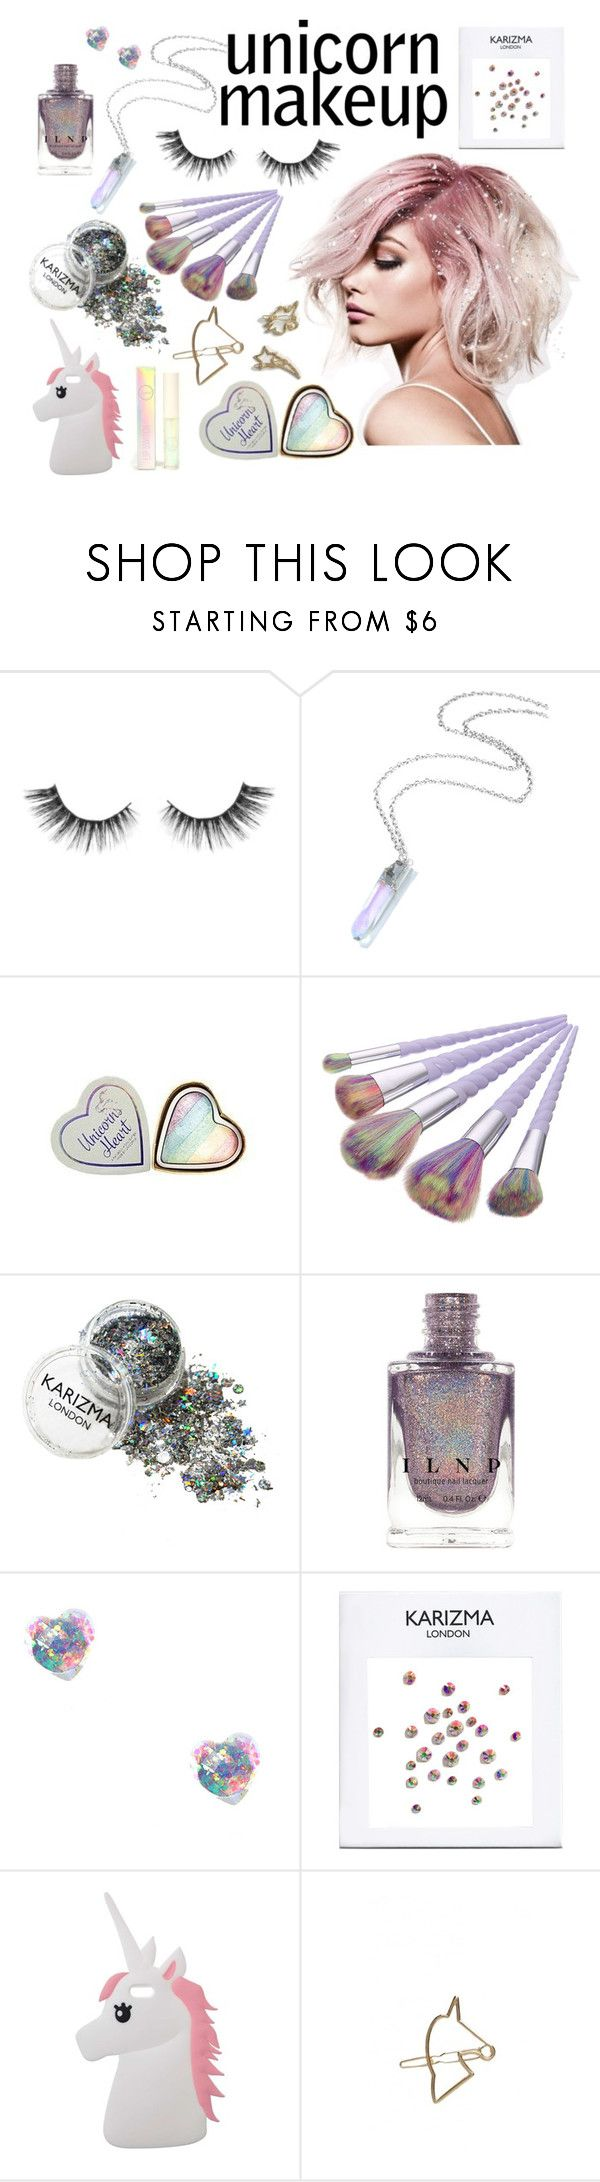 """unicorn makeup"" by peyton-shayy ❤ liked on Polyvore featuring beauty, Unicorn Lashes, Miss Selfridge, Johnny Loves Rosie and ASOS"